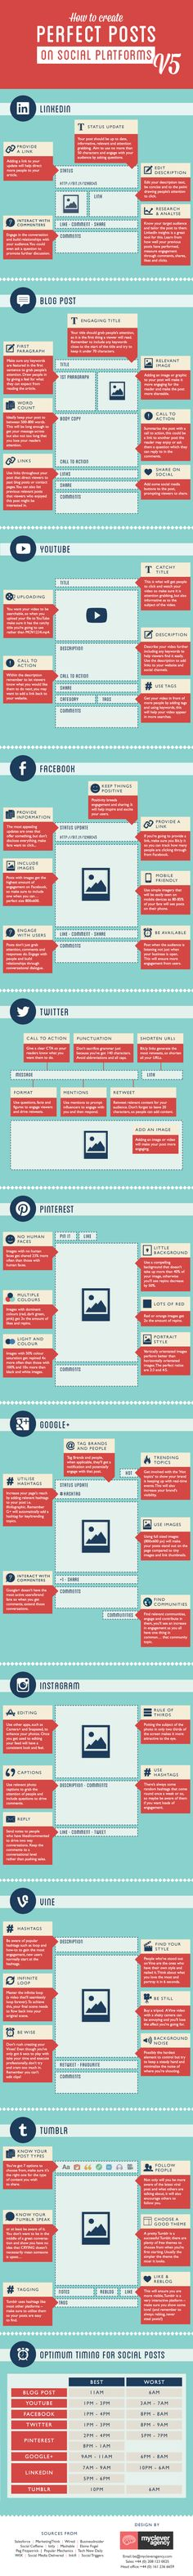 "How To Create Perfect Posts on Most Popular Social Platforms [ 3 Infographics ]. The following are the latest in a series of infographics, from ""My Clever Agency,"" that are how-to's to create the perfect post on all of the most popular social media 'channels' (Facebook, Twitter, Google+, Pinterest, LinkedIn, YouTube, Instagram, Vine, Tumblr, and Blogs). Many tips and tricks presented."